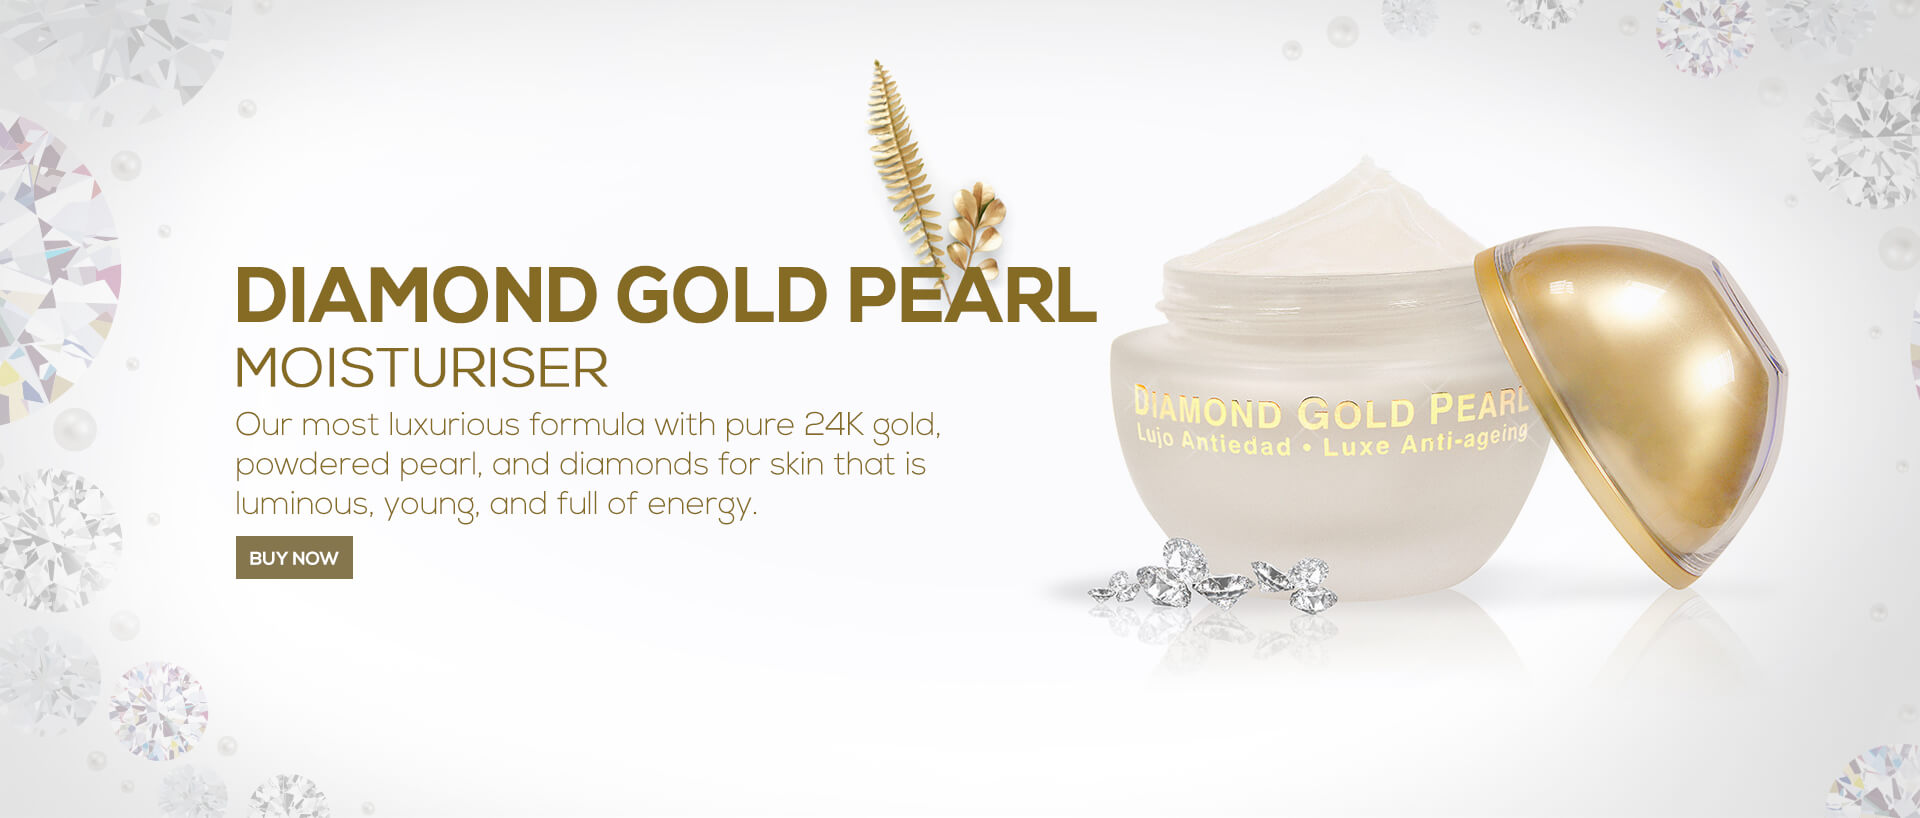 Diamond Gold Pearl Moisturiser